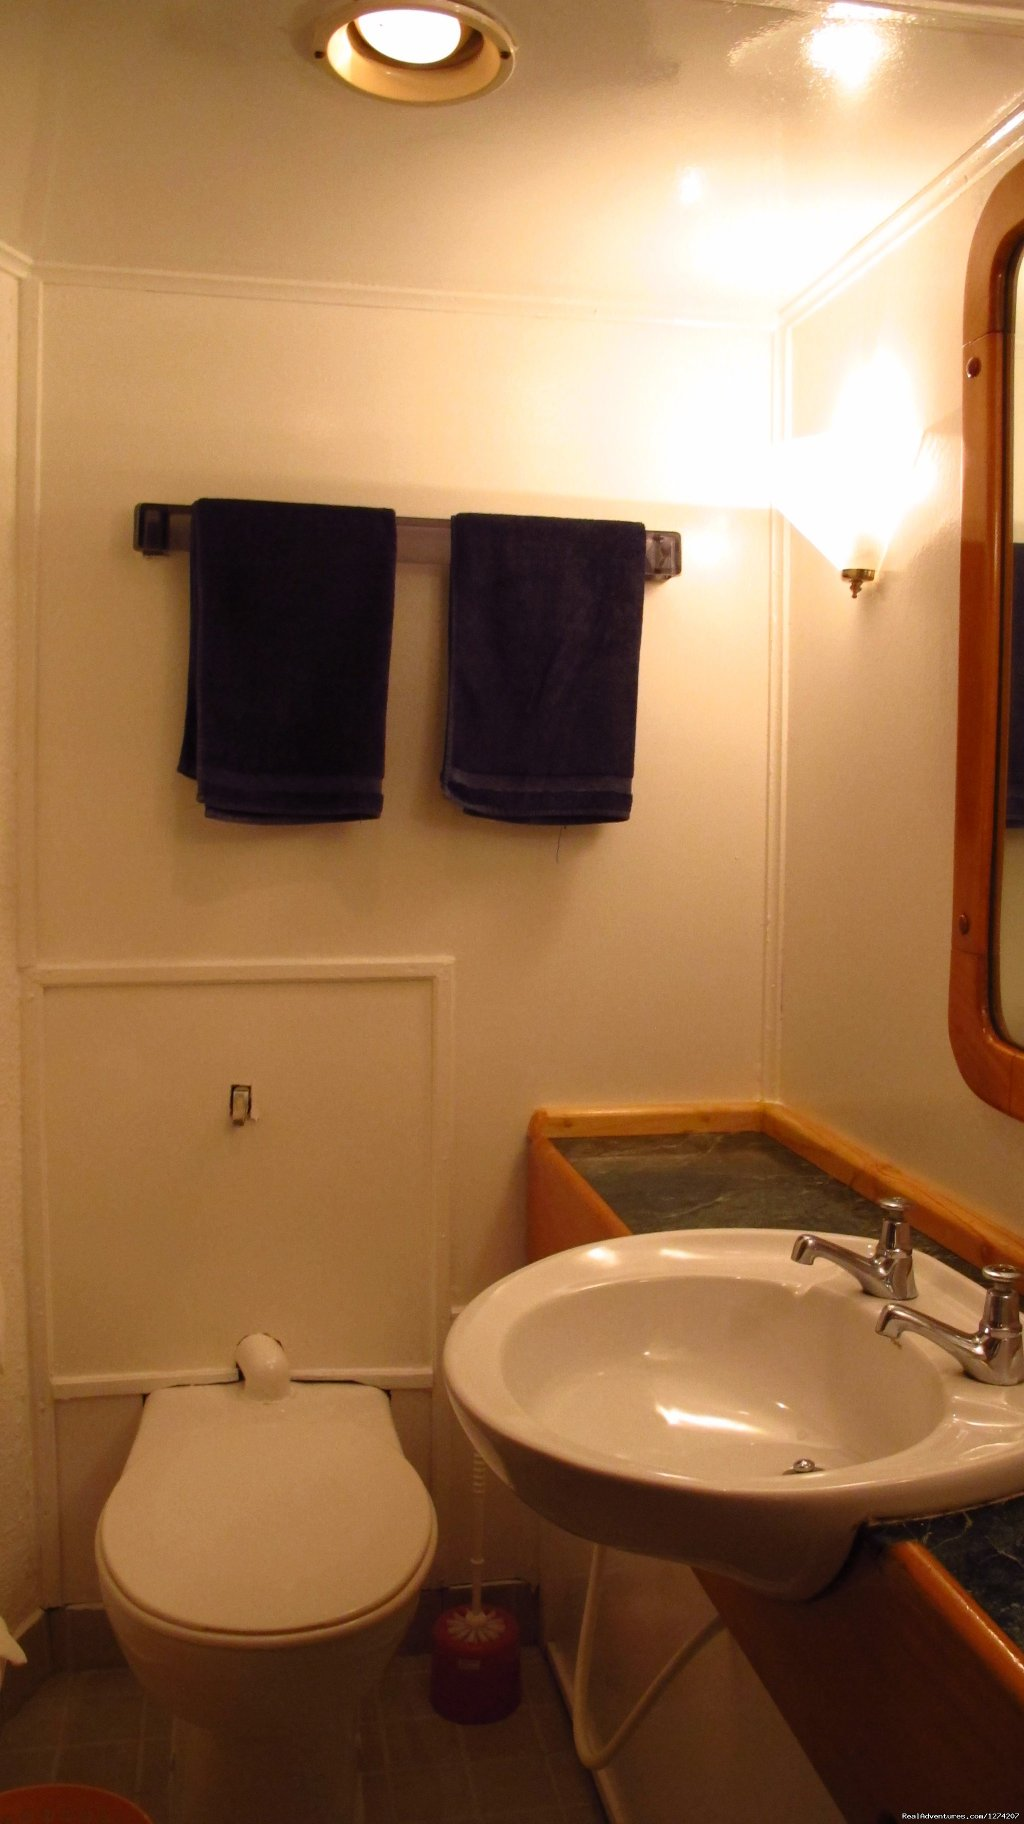 Bathroom | Image #14/14 | Explore the Maldives on MV Yasawa Princess